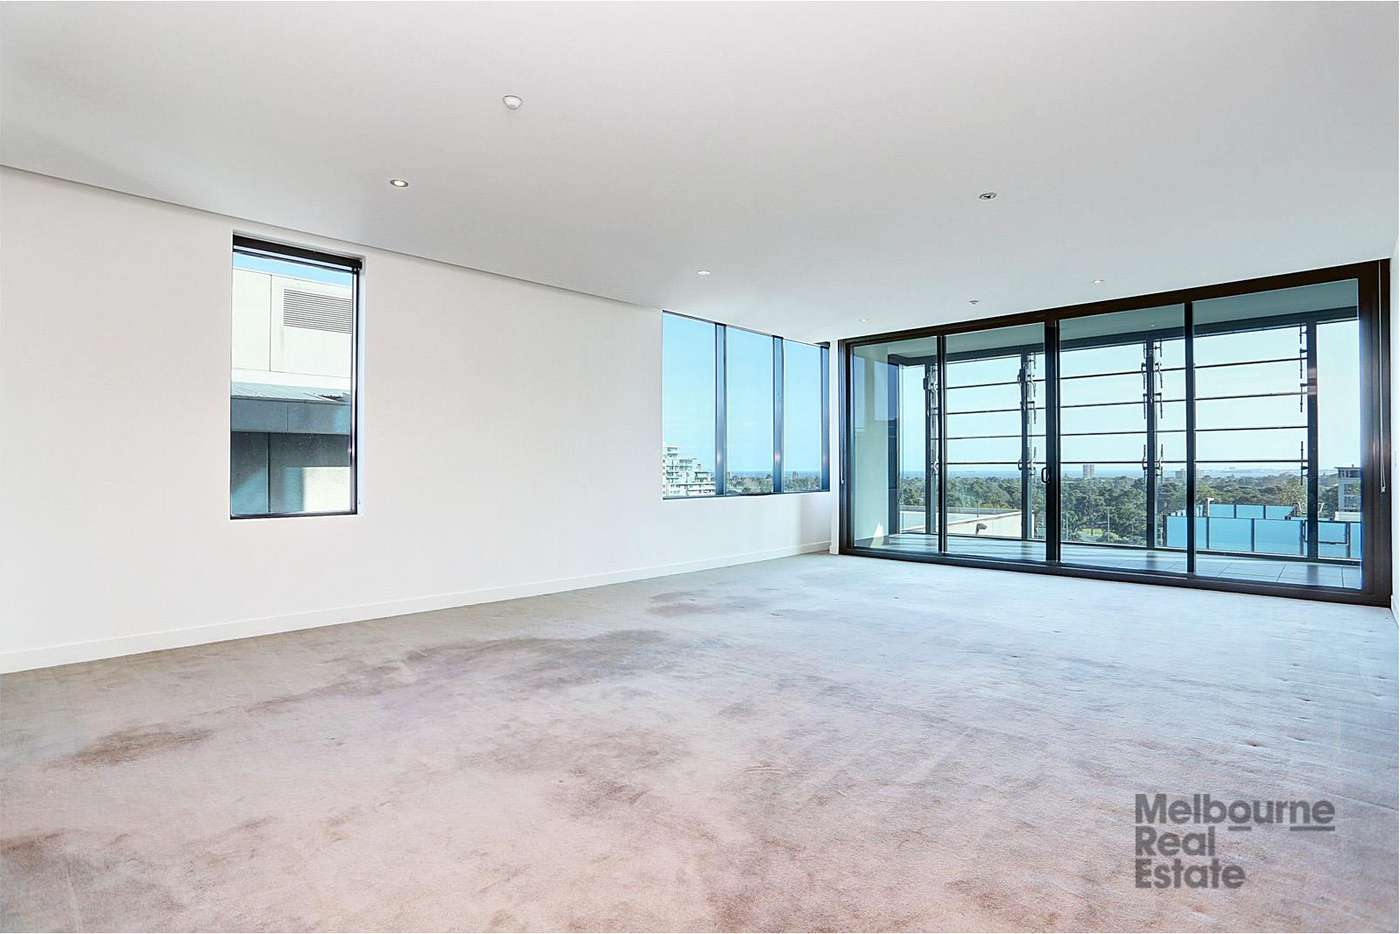 Main view of Homely apartment listing, 1004/505 St Kilda Road, Melbourne VIC 3004